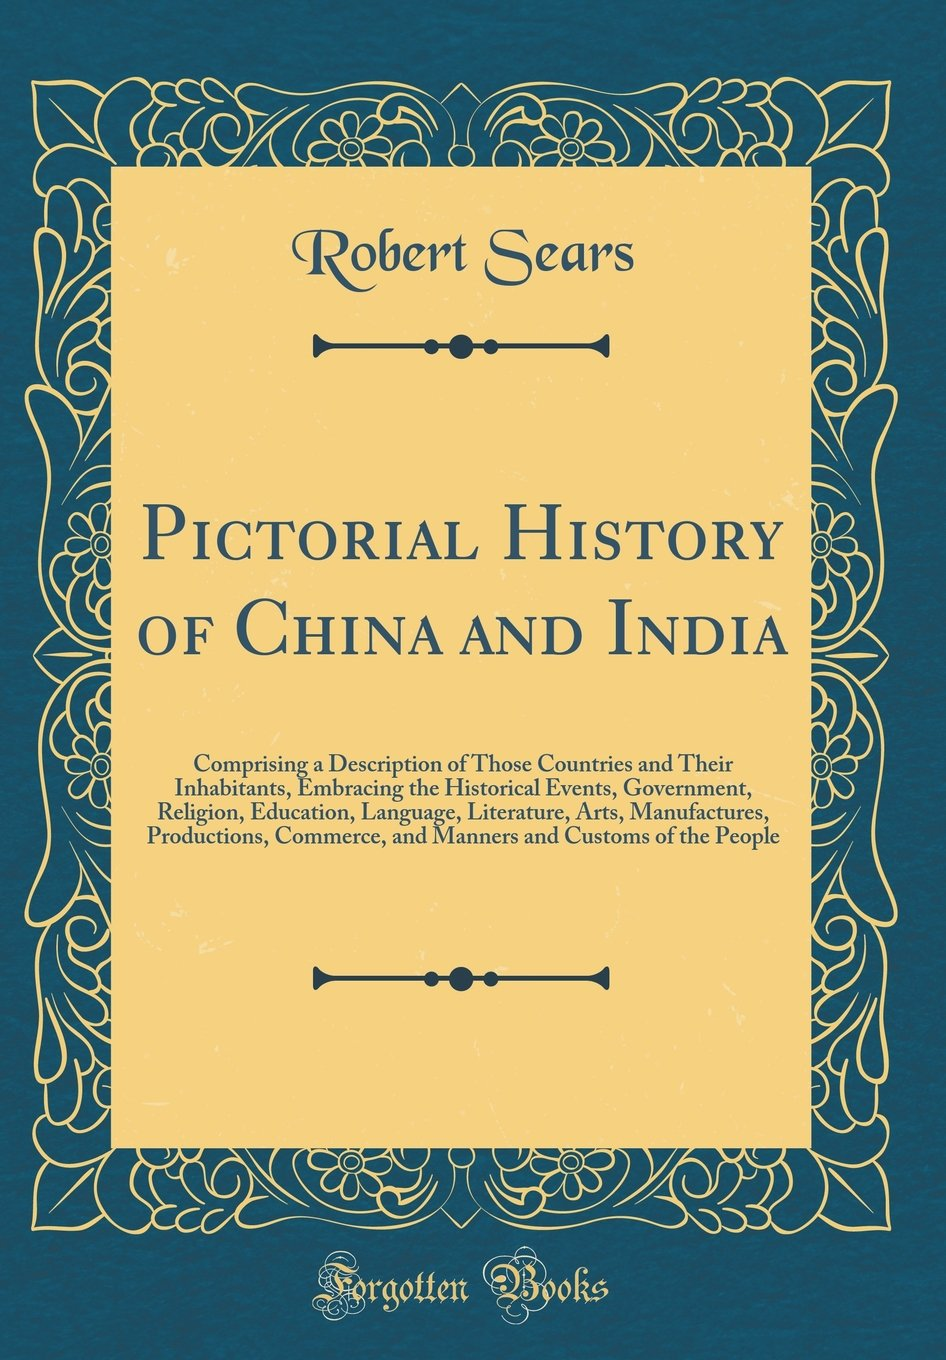 Download Pictorial History of China and India: Comprising a Description of Those Countries and Their Inhabitants, Embracing the Historical Events, Government, ... Productions, Commerce, and Manners and Cus pdf epub